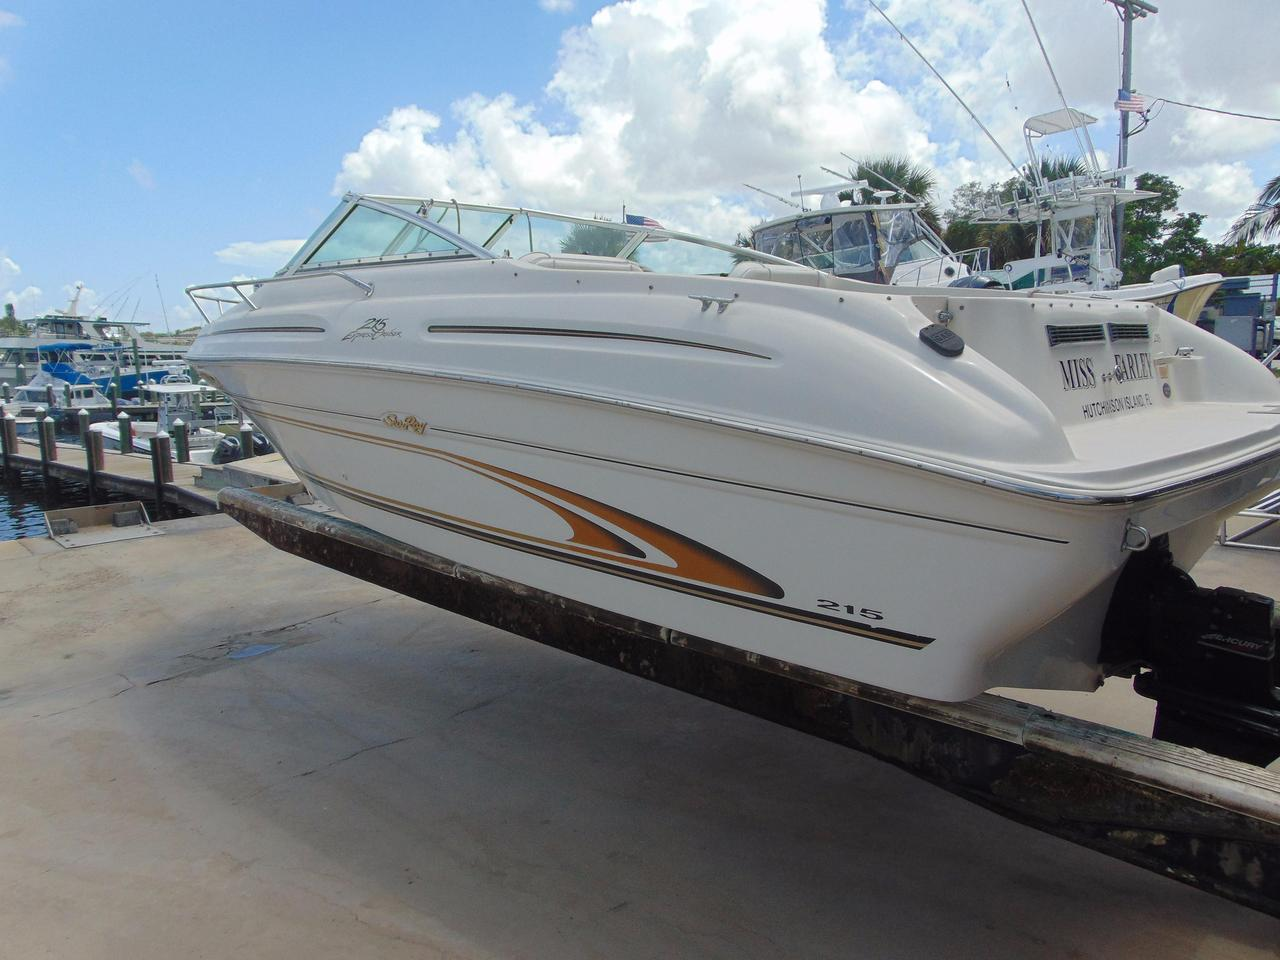 ... Used Sea Ray 215 Express Cruiser215 Express Cruiser Boat For Sale ...